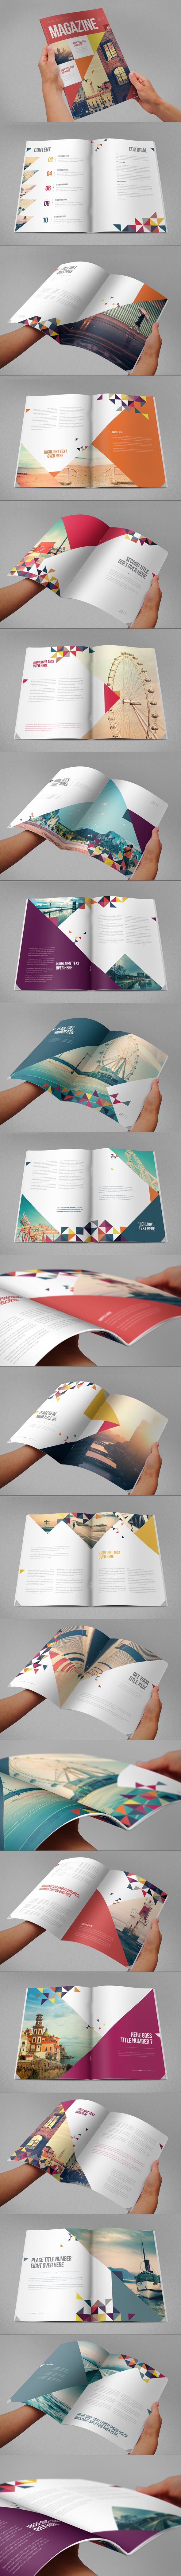 Modern Triangles Magazine by Abra Design, via Behance > I absolutely LOVE the color scheme